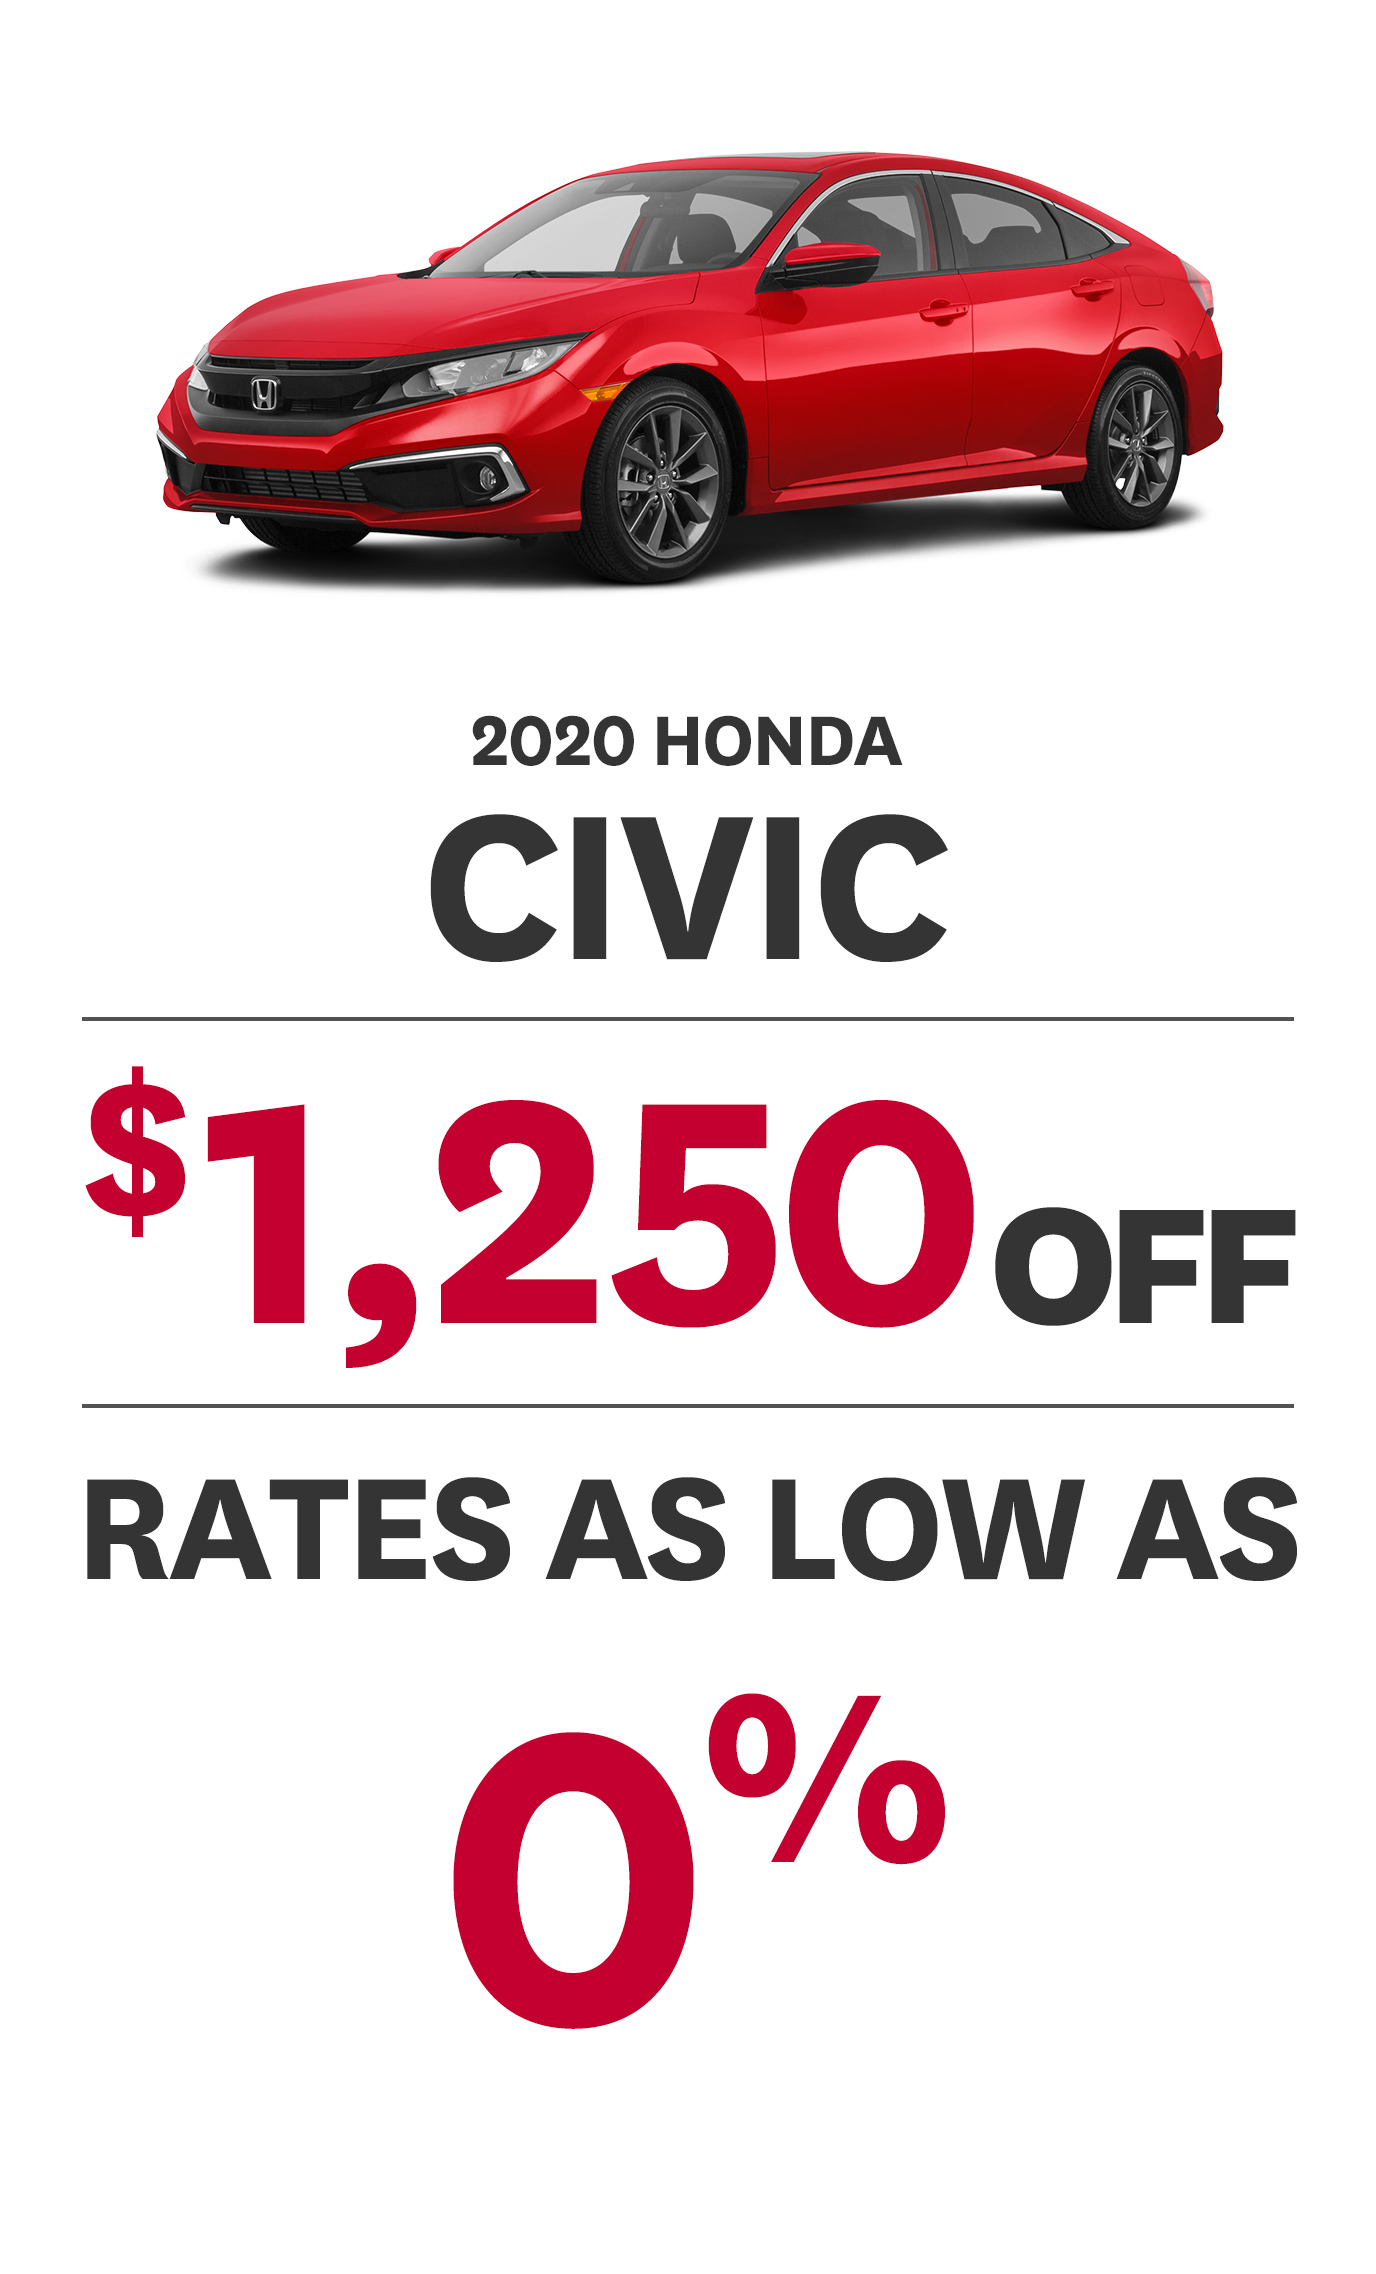 2020 Civic Offer